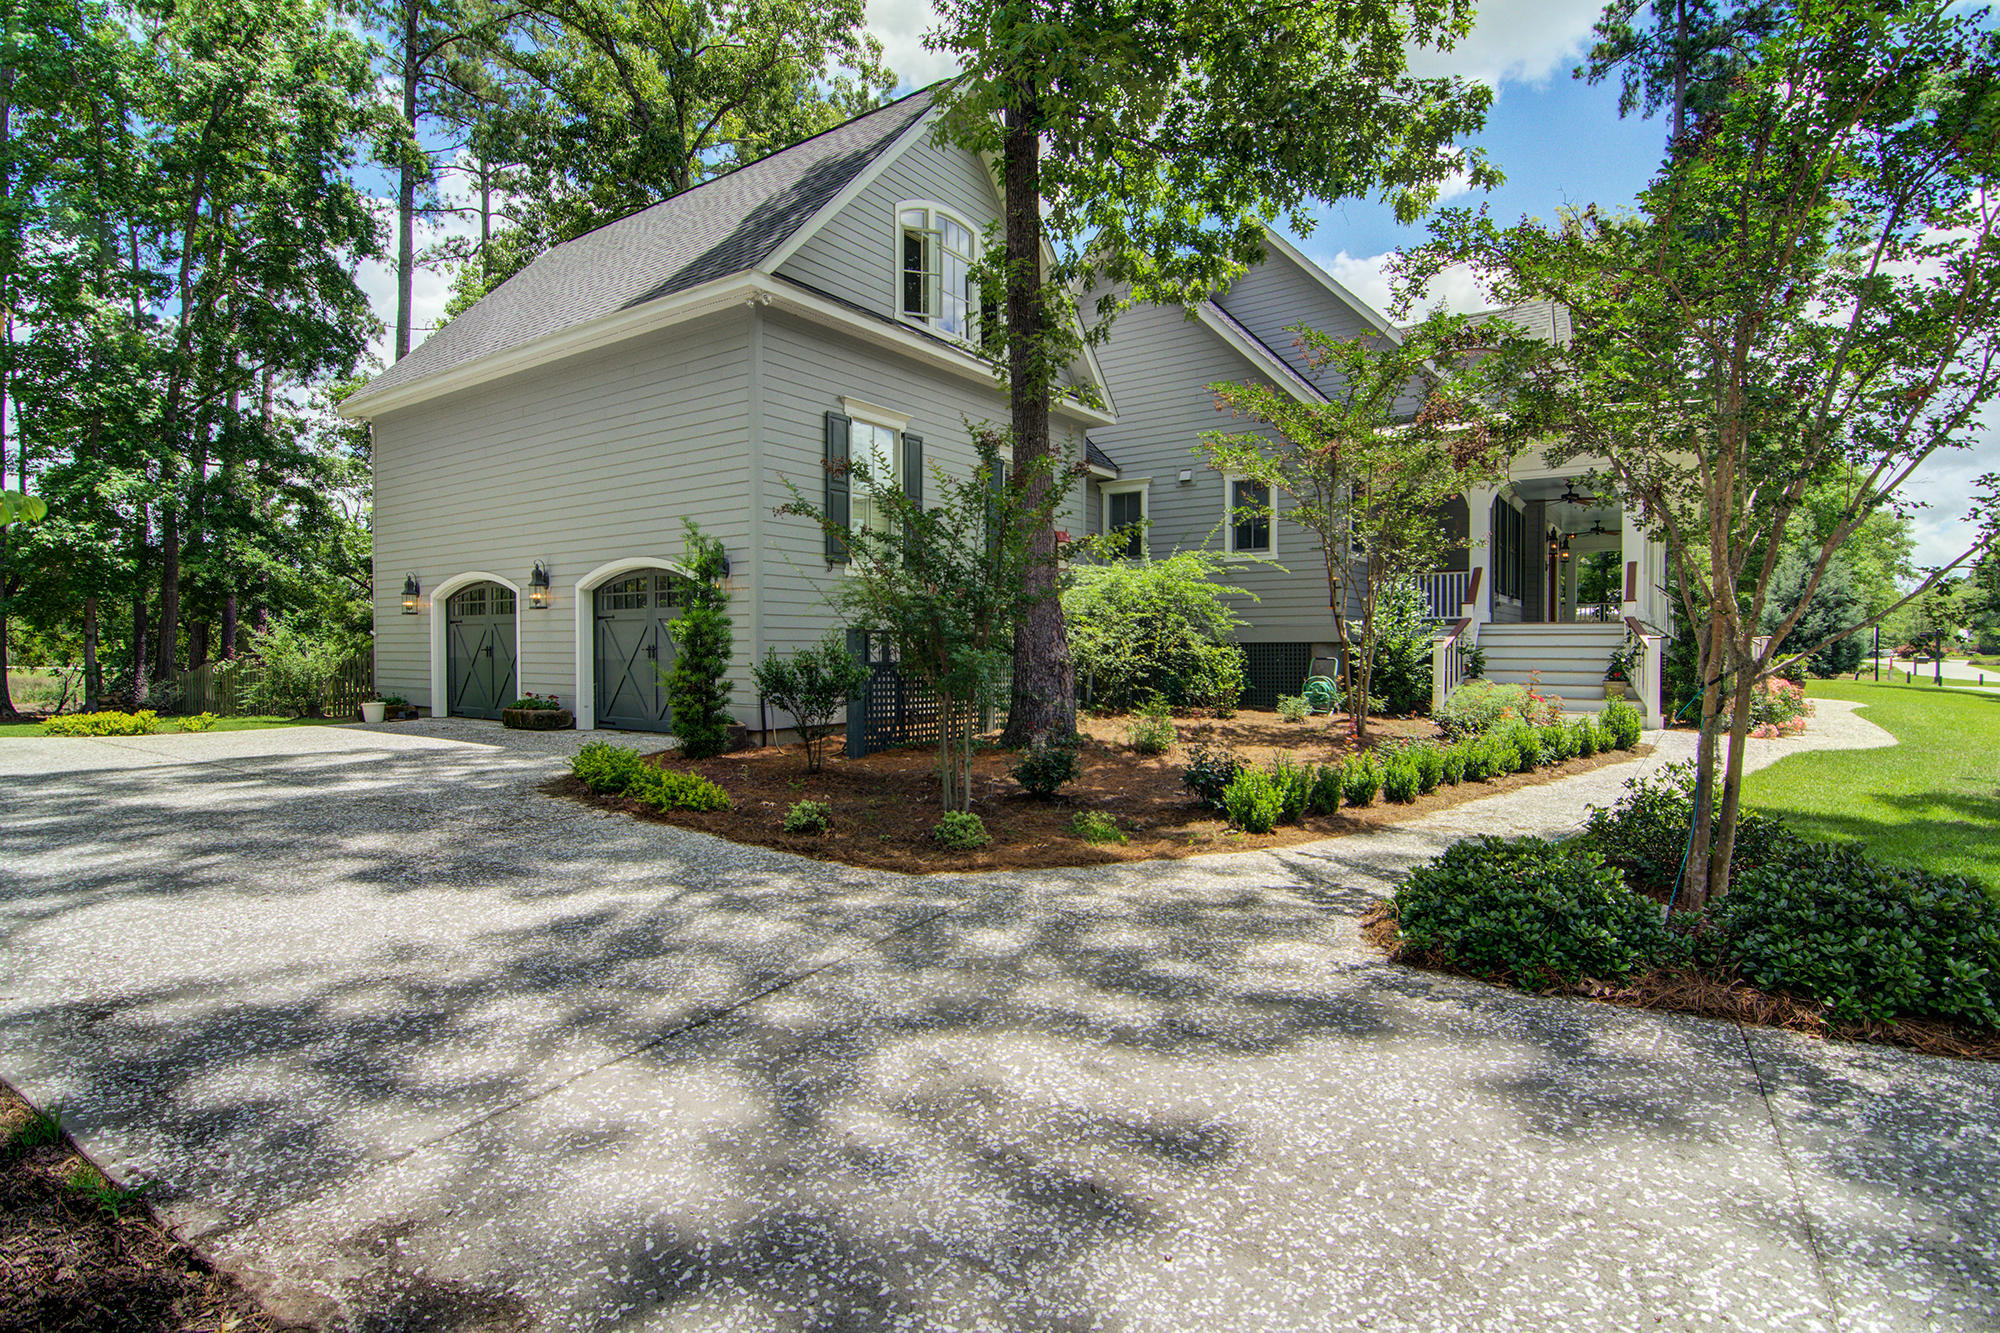 Photo of 4160 Lady Banks Ln, Ravenel, SC 29470